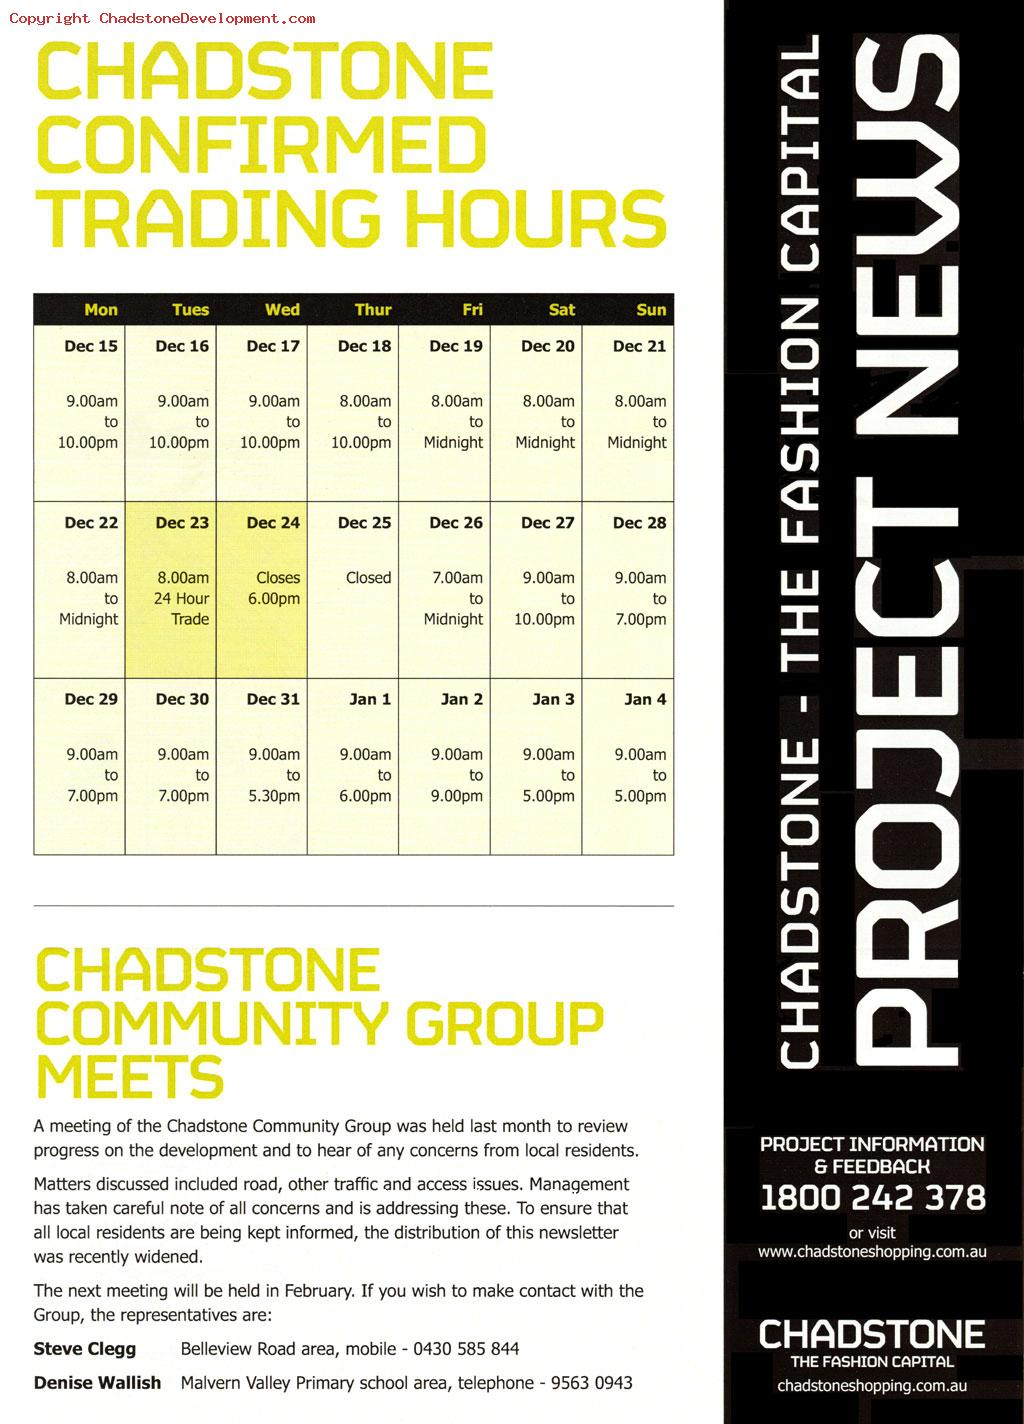 2008 Chadstone Christmas Trading hours - Chadstone Development Discussions